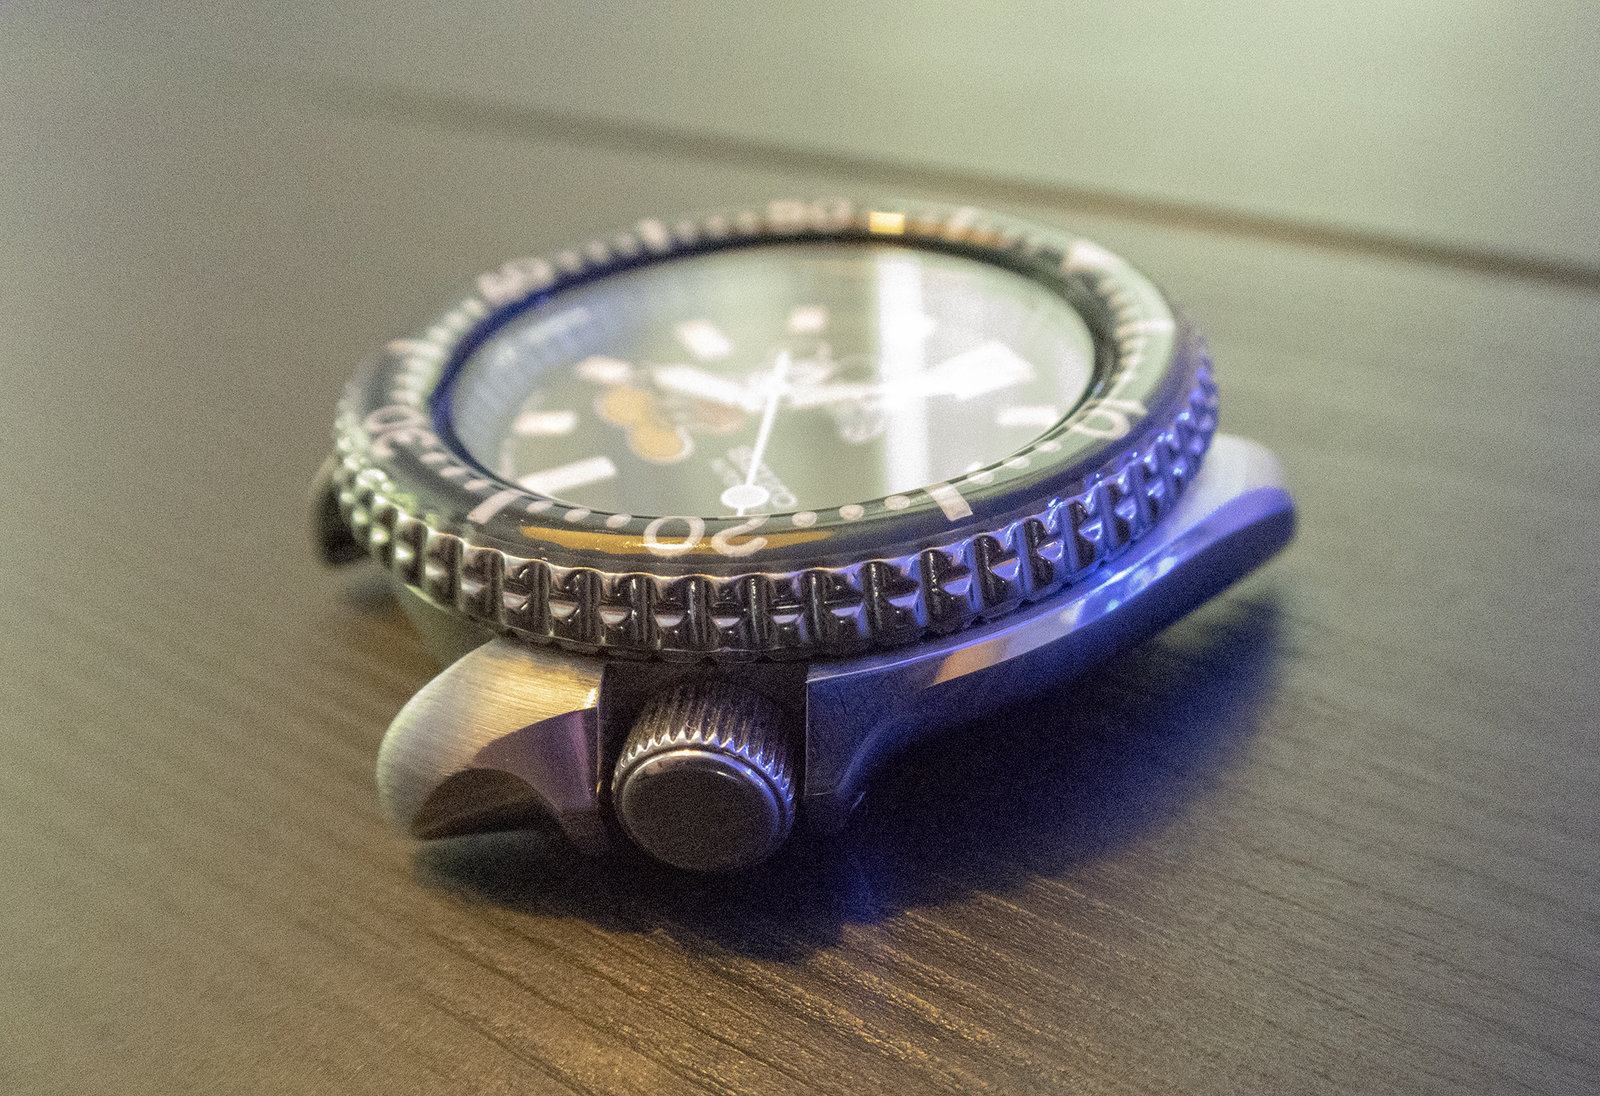 seiko_musse_fore_04.